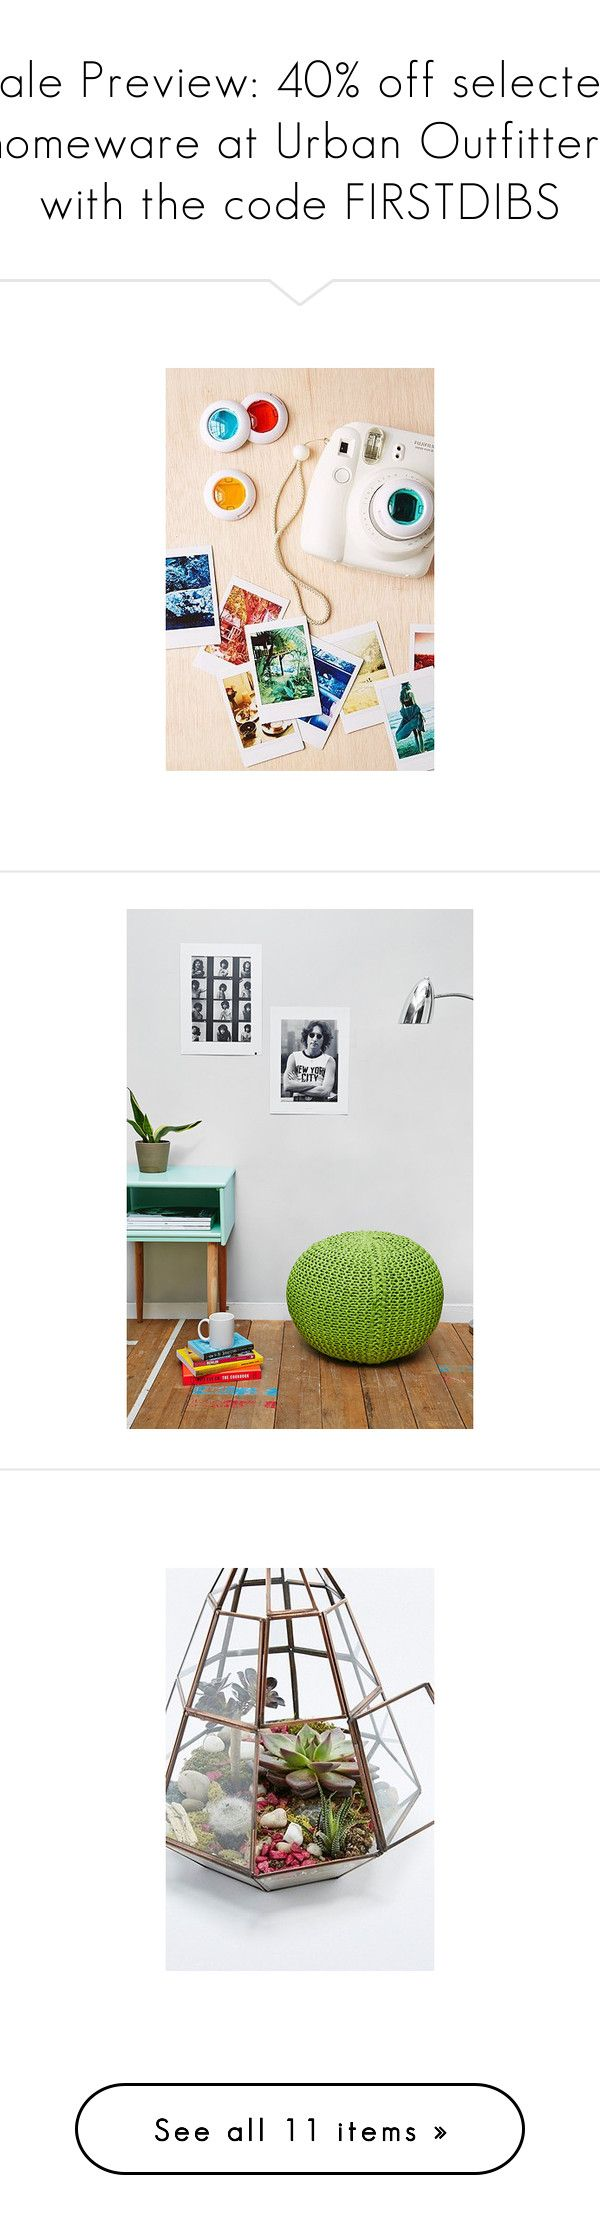 """""""Sale Preview: 40% off selected homeware at Urban Outfitters with the code FIRSTDIBS"""" by urbanoutfitterseurope ❤ liked on Polyvore featuring home, furniture, chairs, lime, lime green bean bag, lime green beanbag chair, lime green furniture, minimalist furniture, green furniture and home decor"""